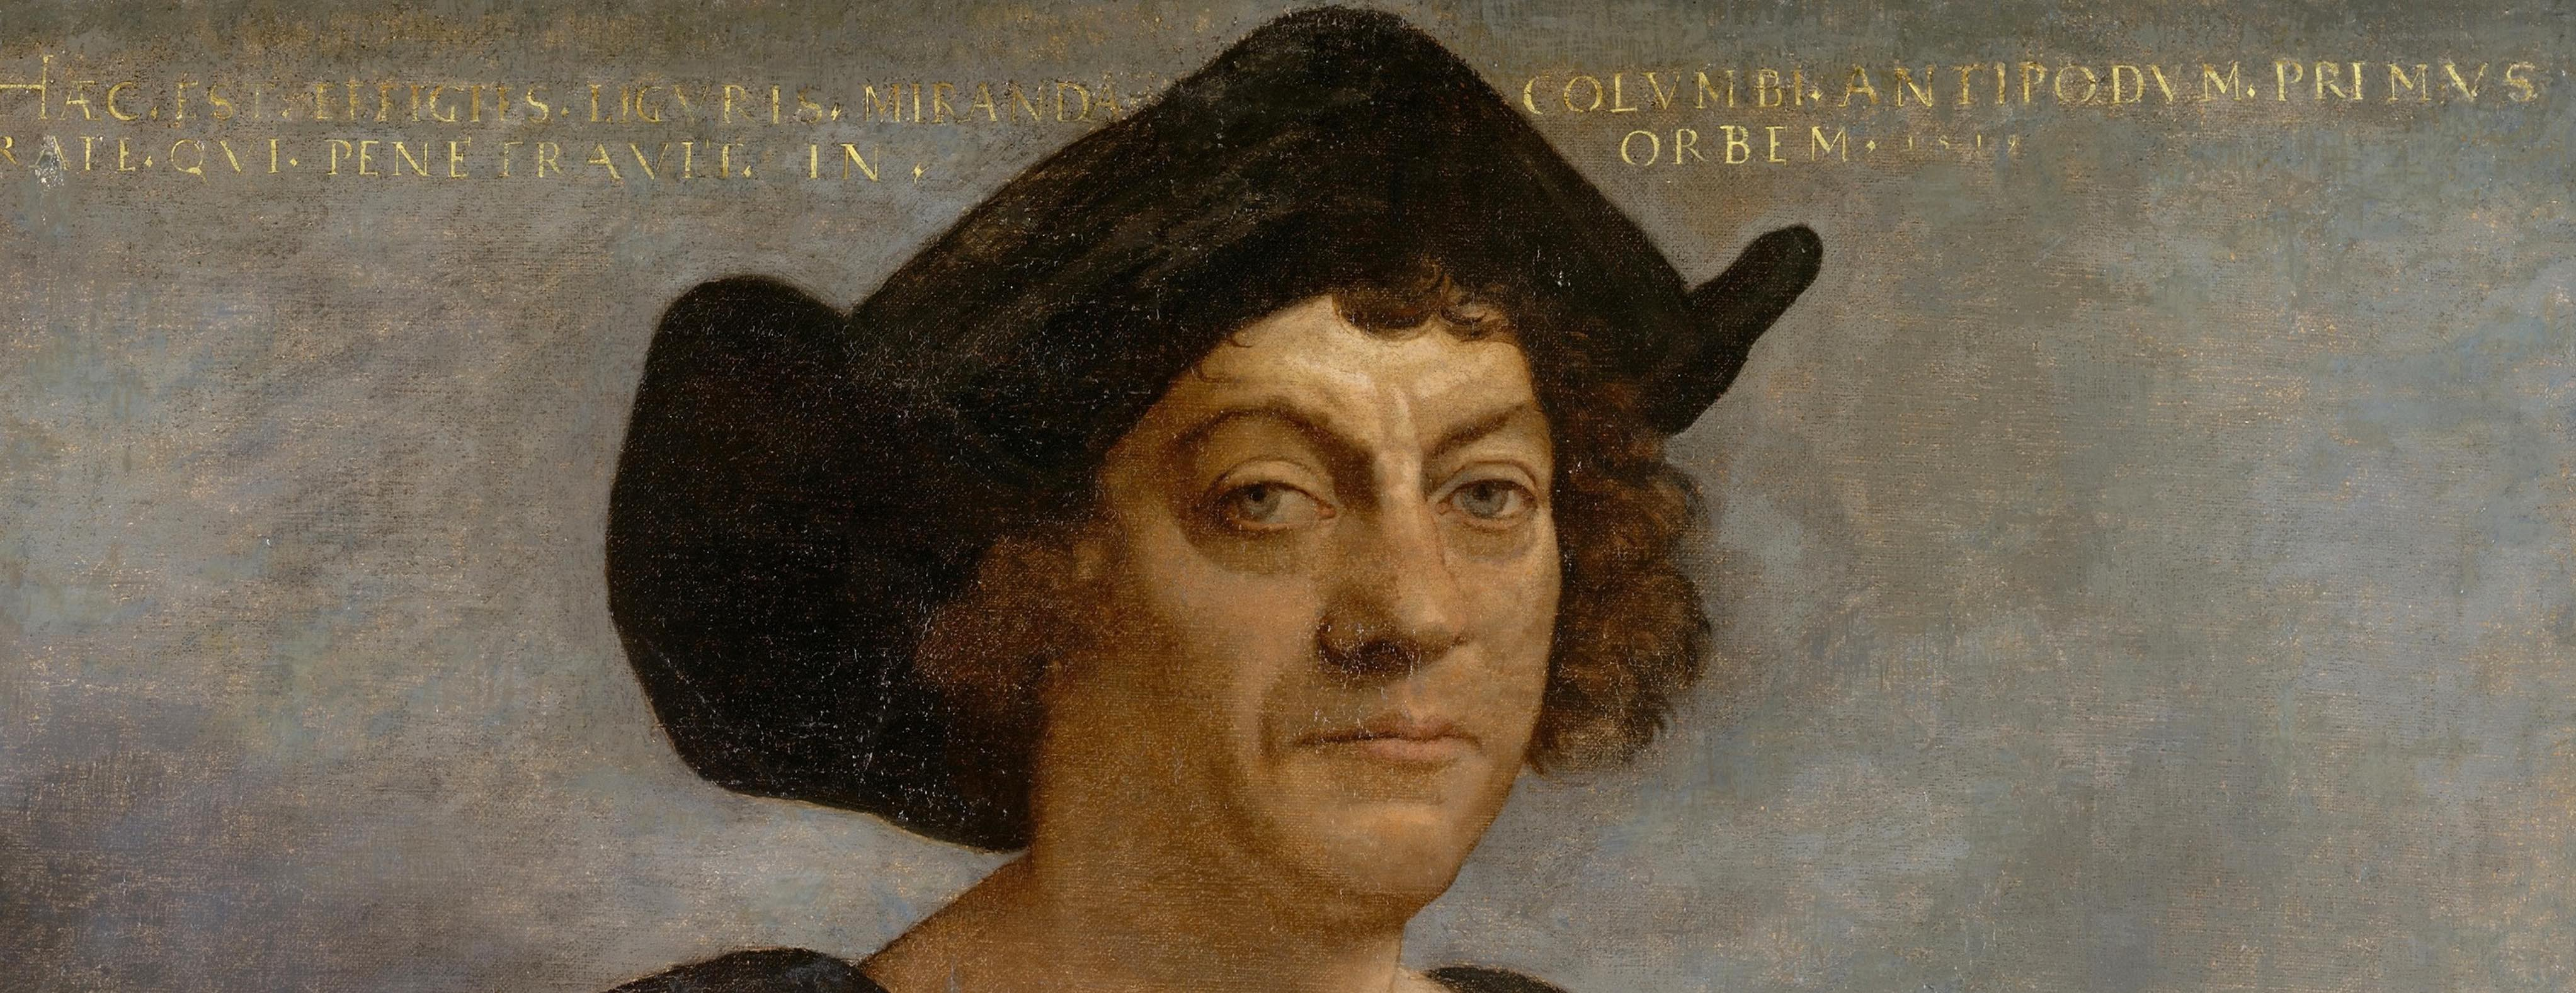 Austin Is the Latest City Dropping Columbus Day in Favor of Indigenous Peoples Day